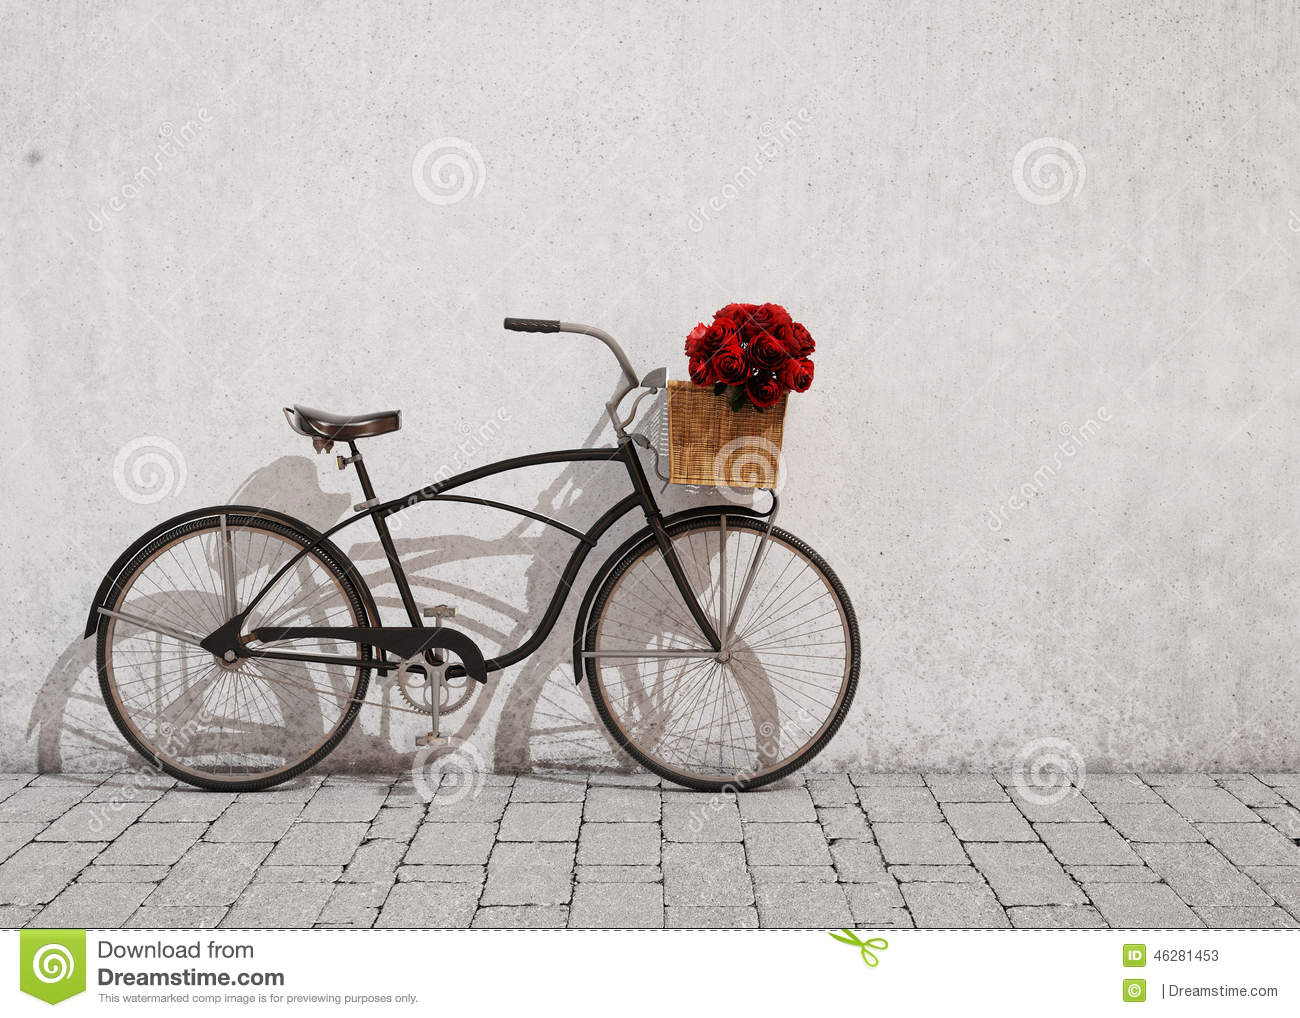 83adbb645d3 Retro black bicycle with basket and flowers in front of the old plaster  wall, red roses in basket, background